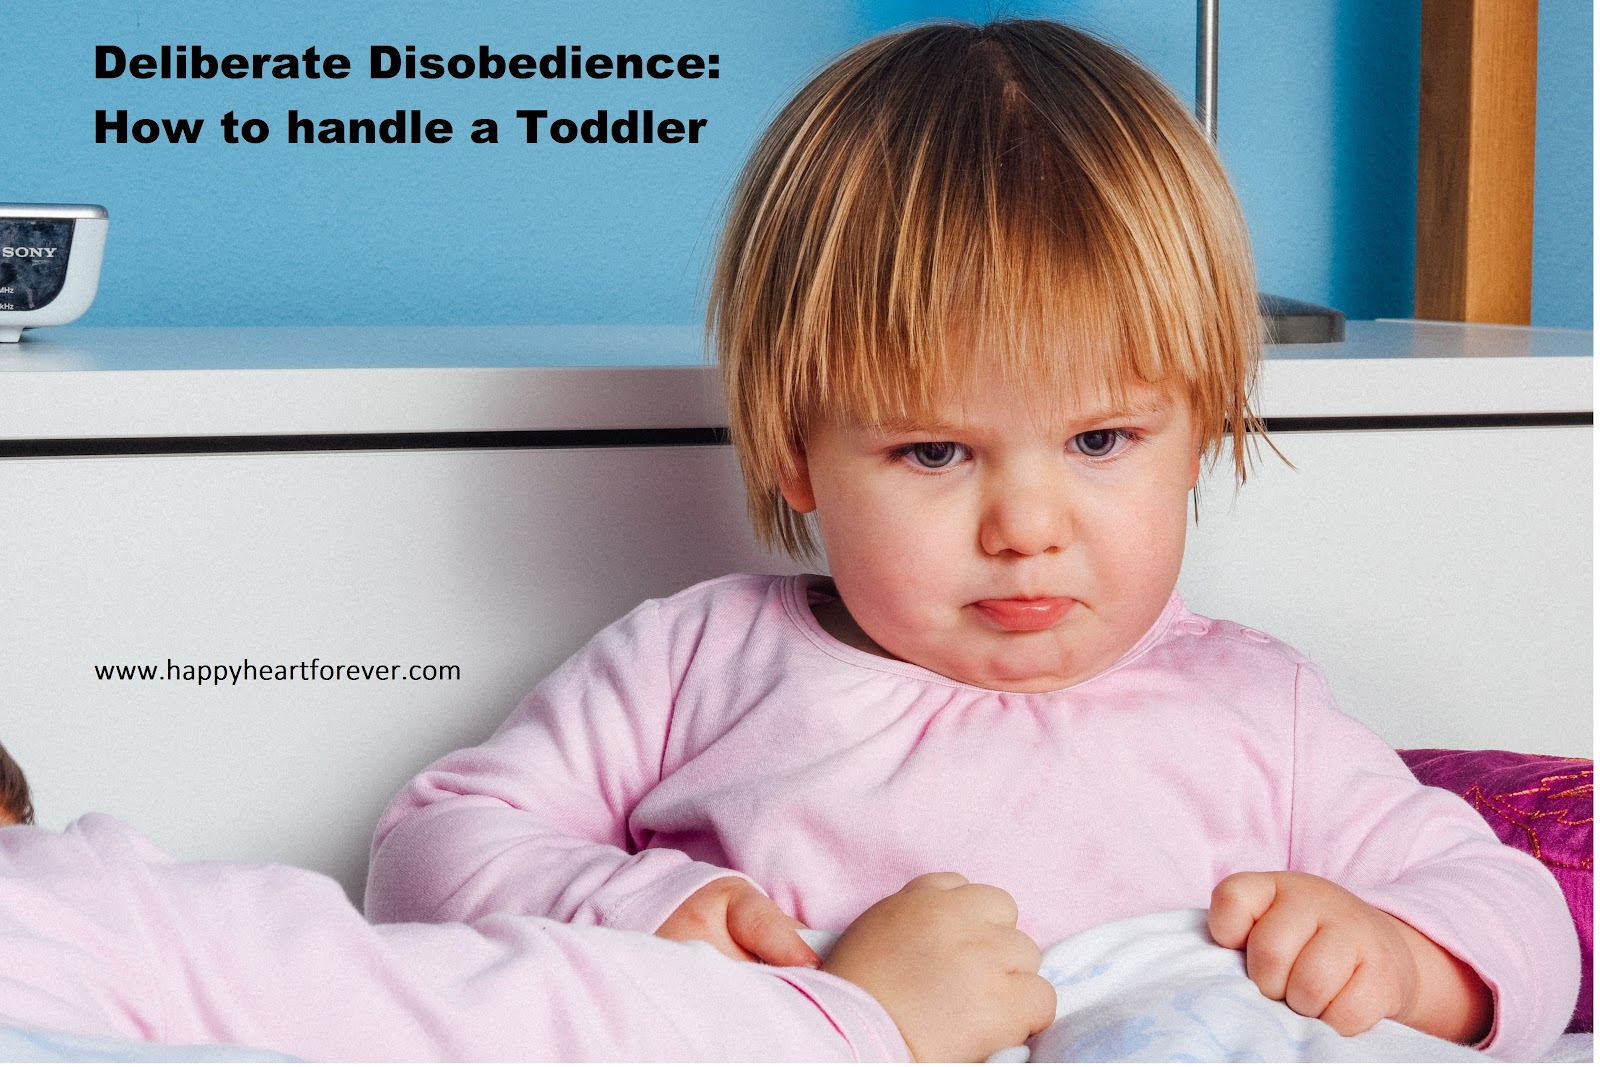 Here are some tips which commonly work and are helpful when toddlers are acting deliberately disobedient.